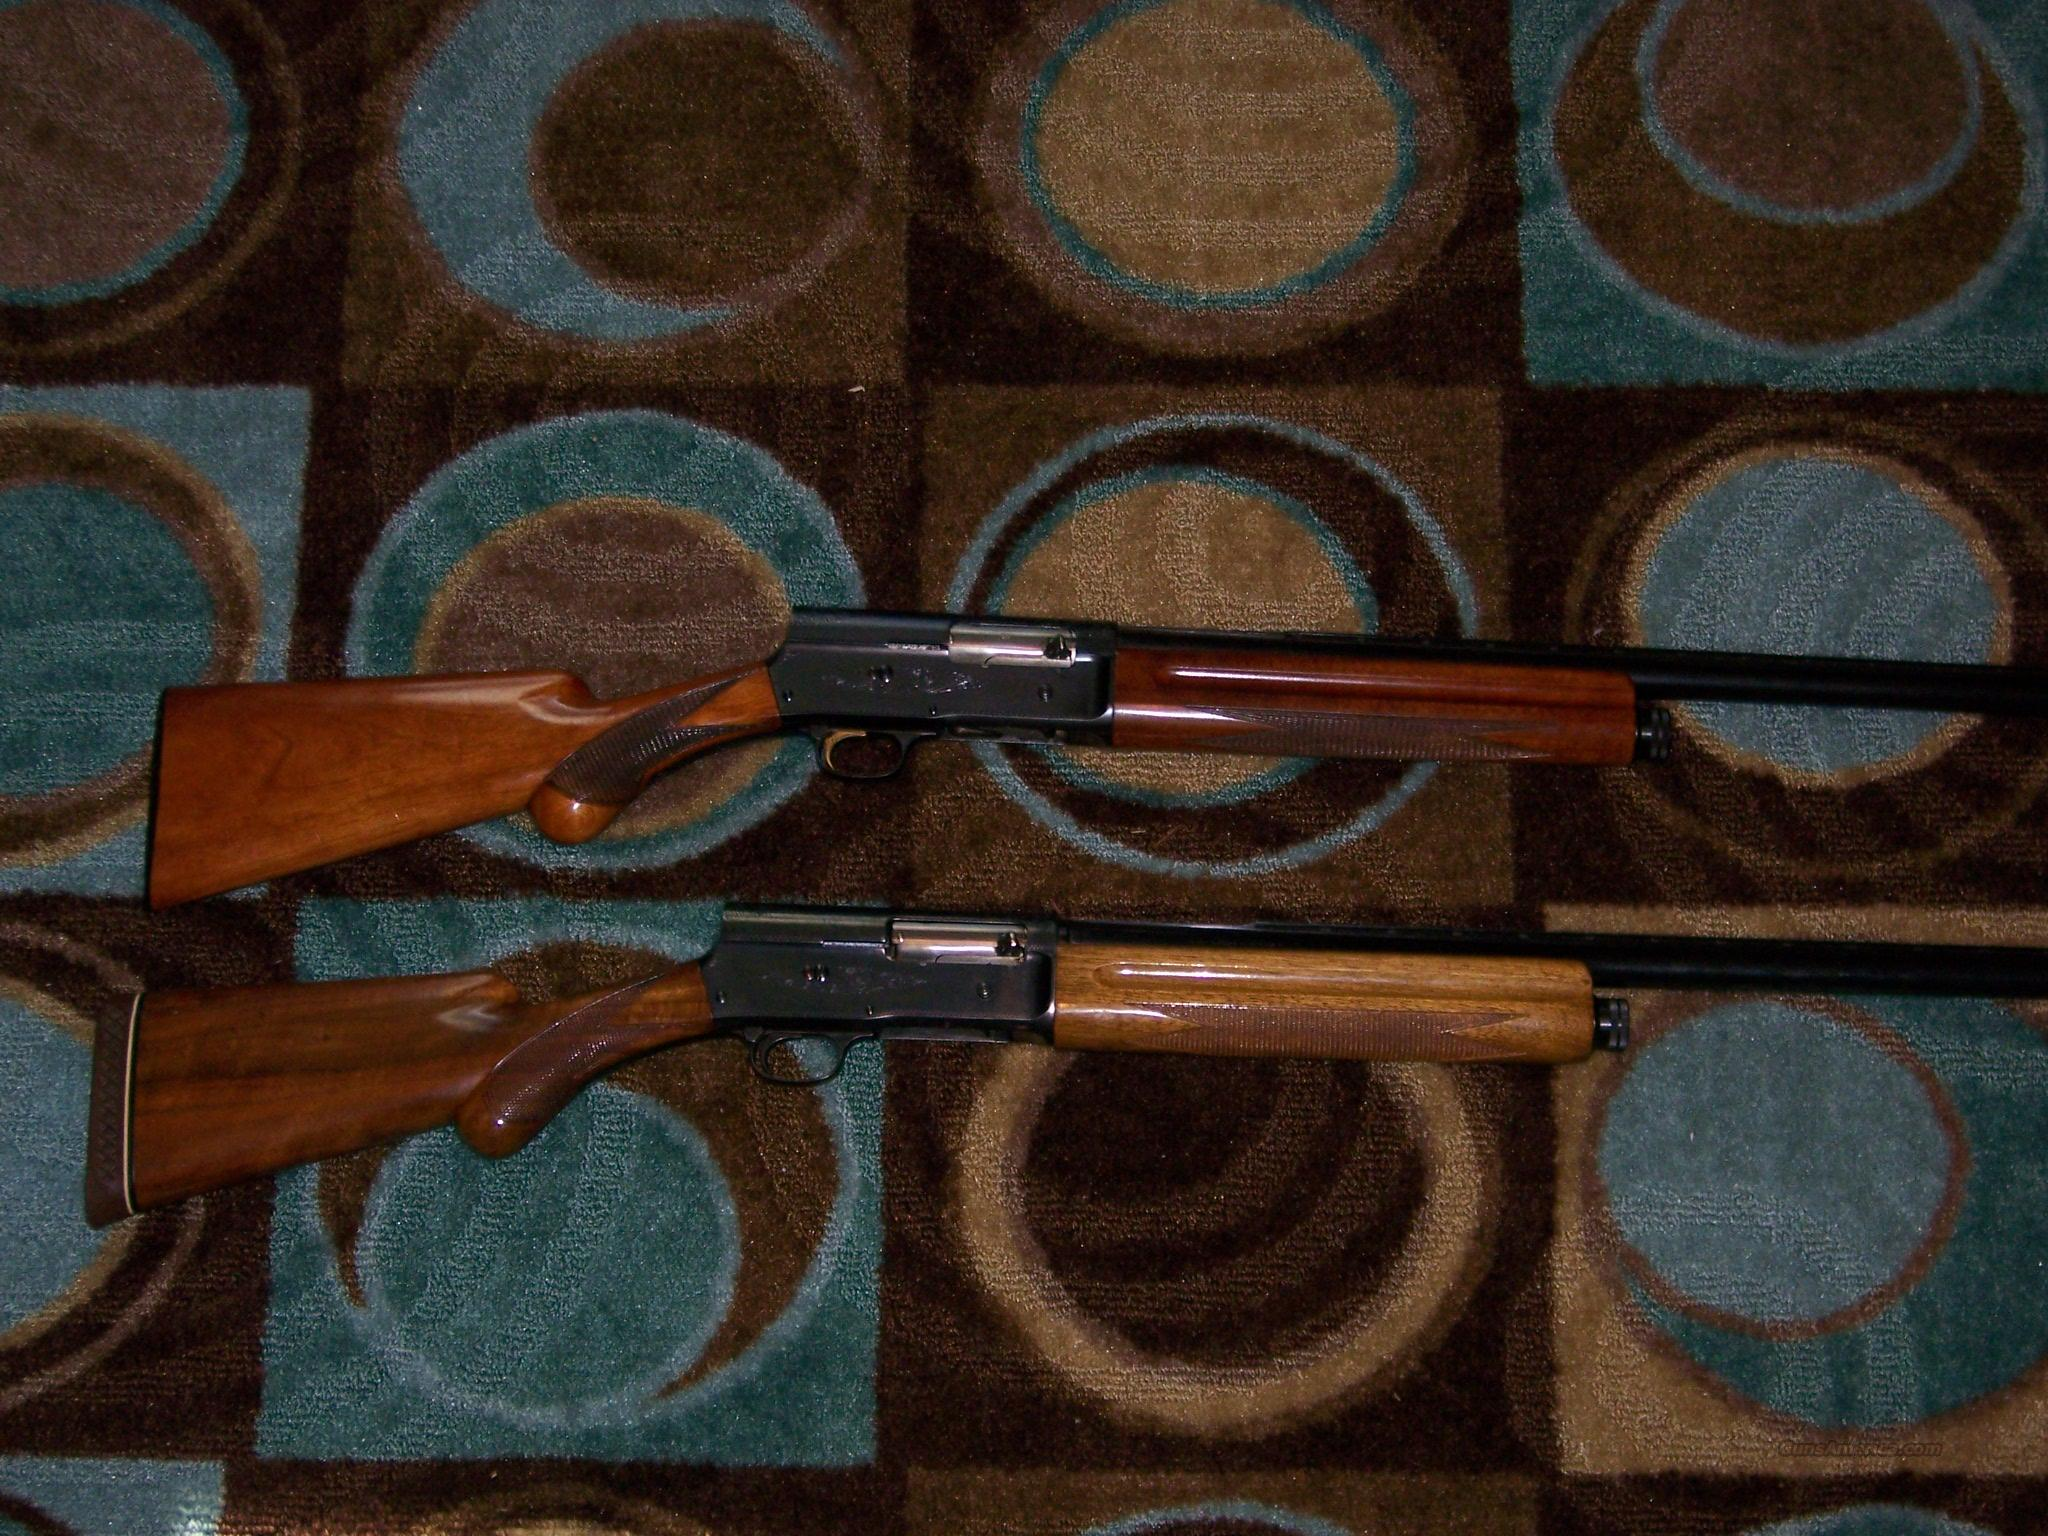 2 Browning Belguim A-5 For sale  Guns > Shotguns > Browning Shotguns > Autoloaders > Hunting